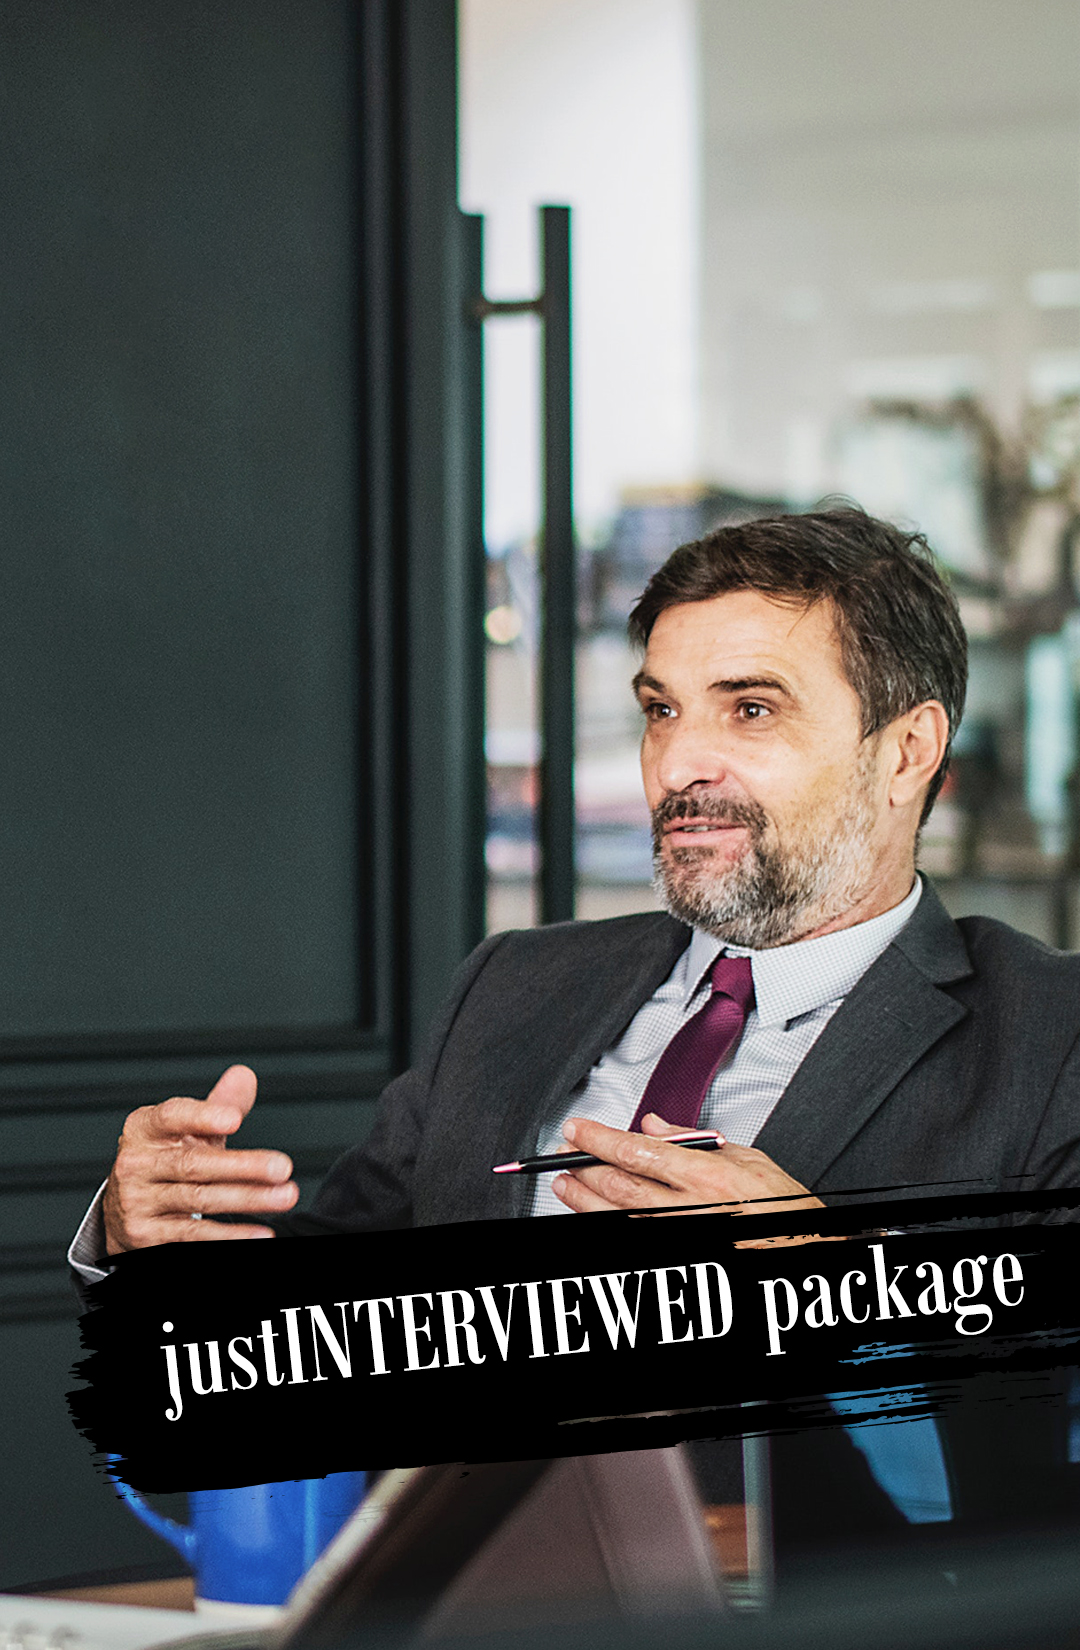 justINTERVIEWED Package.jpg